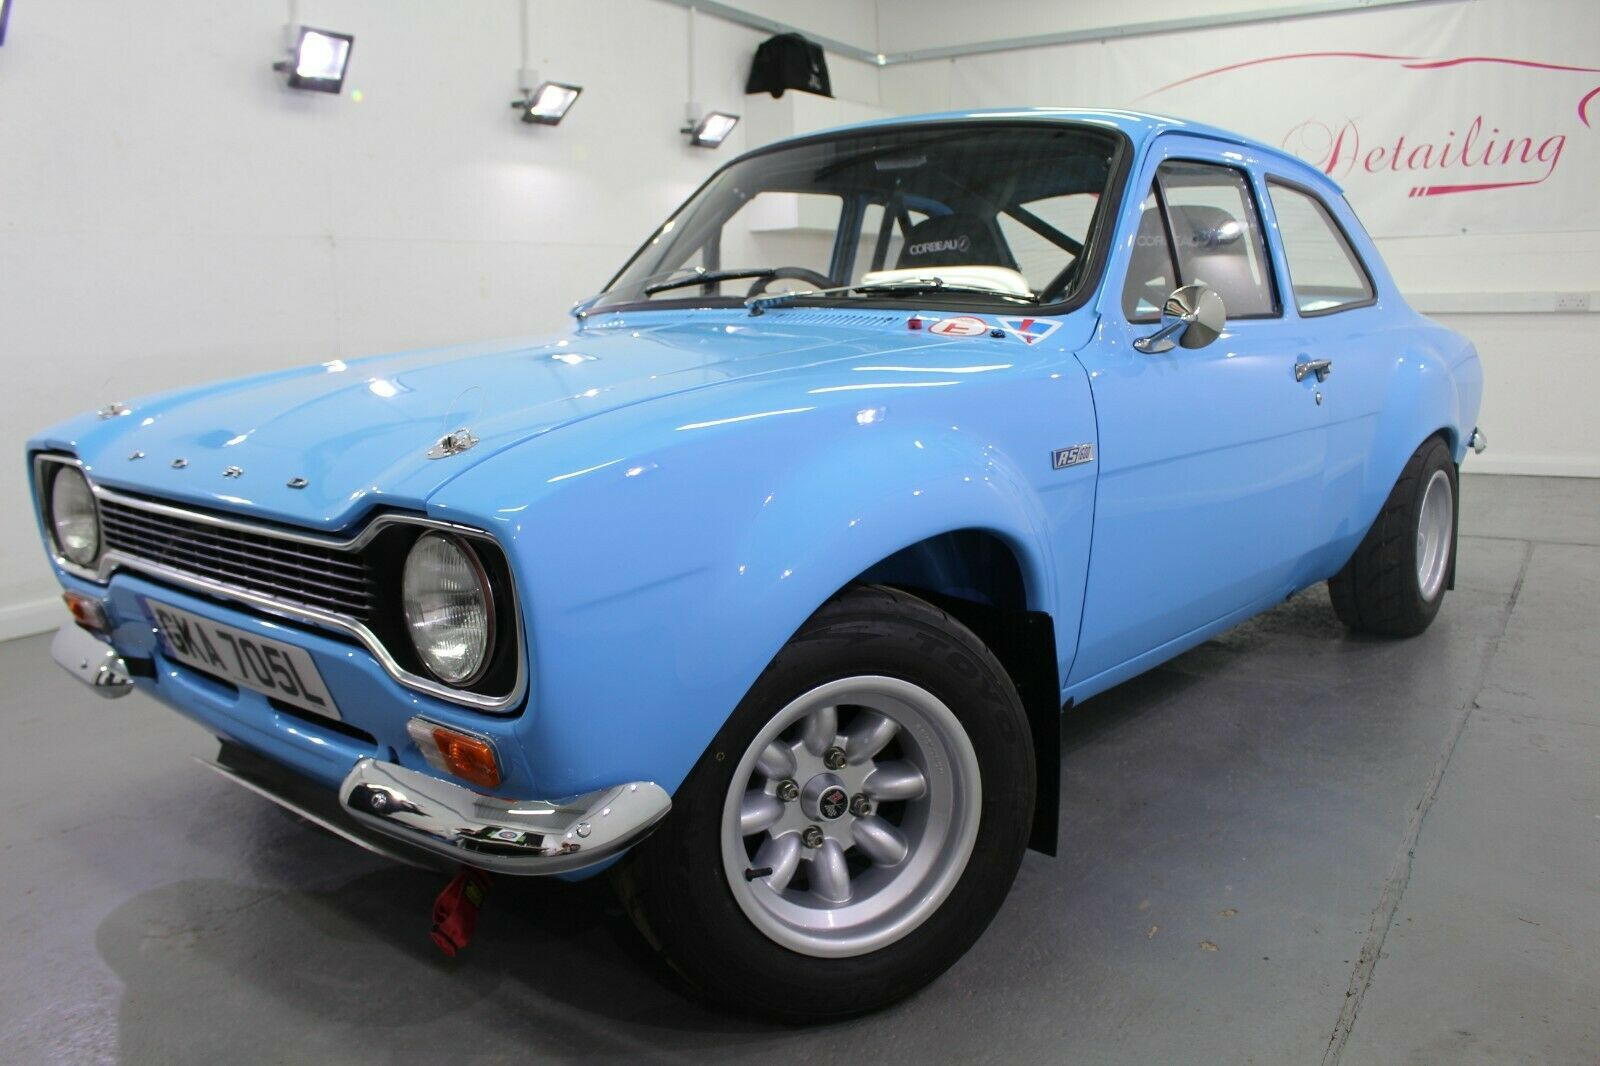 A classic Ford Escort went on sale for a staggering £125,000 recently – 100 times its original price tag